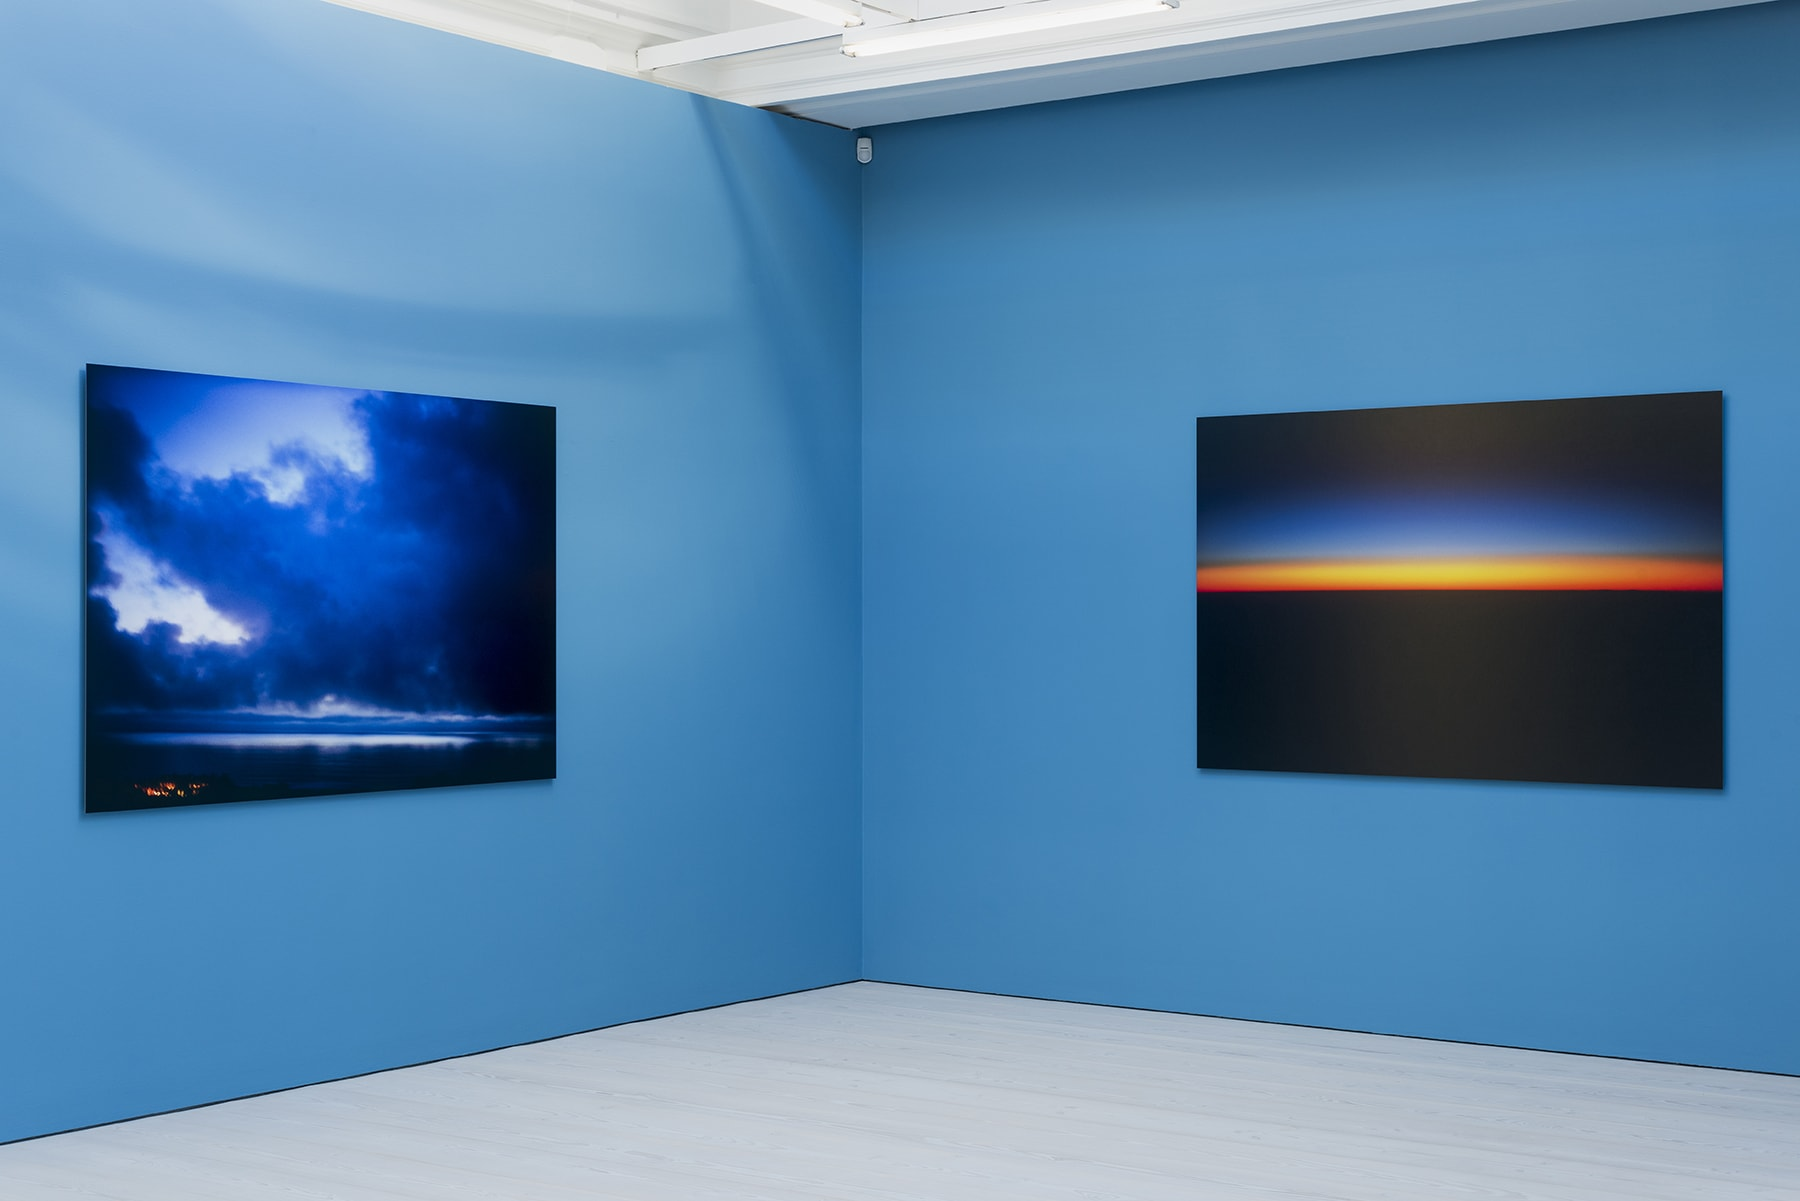 2 large color photographs of horizon lines at sunset hanging on a bright blue wall.